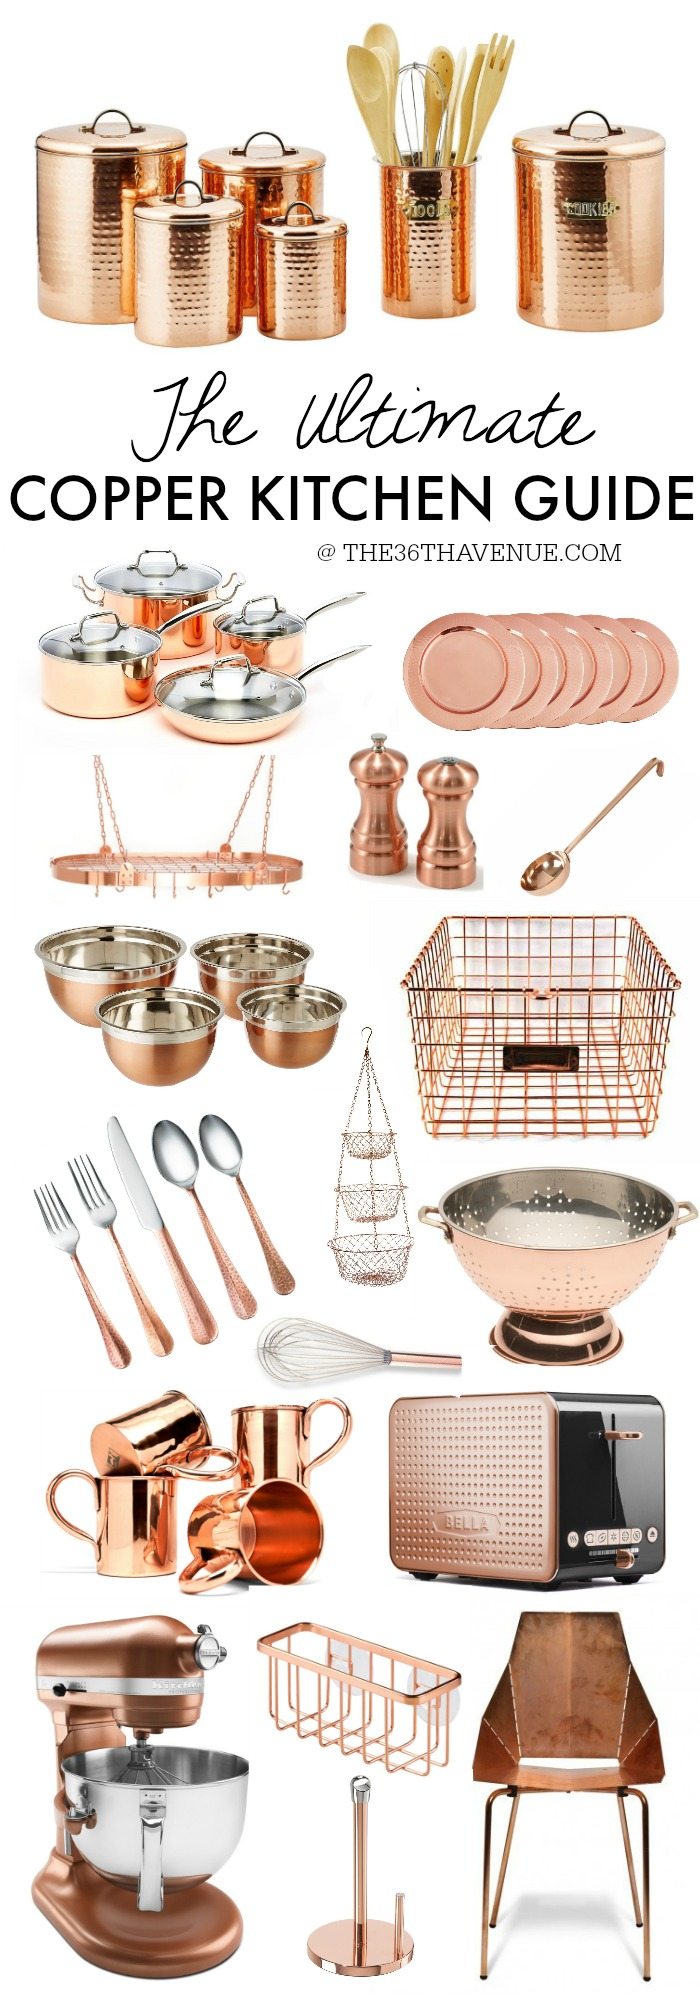 Copper Kitchen Decor These Is The Ultimate Guide Everything You Need To